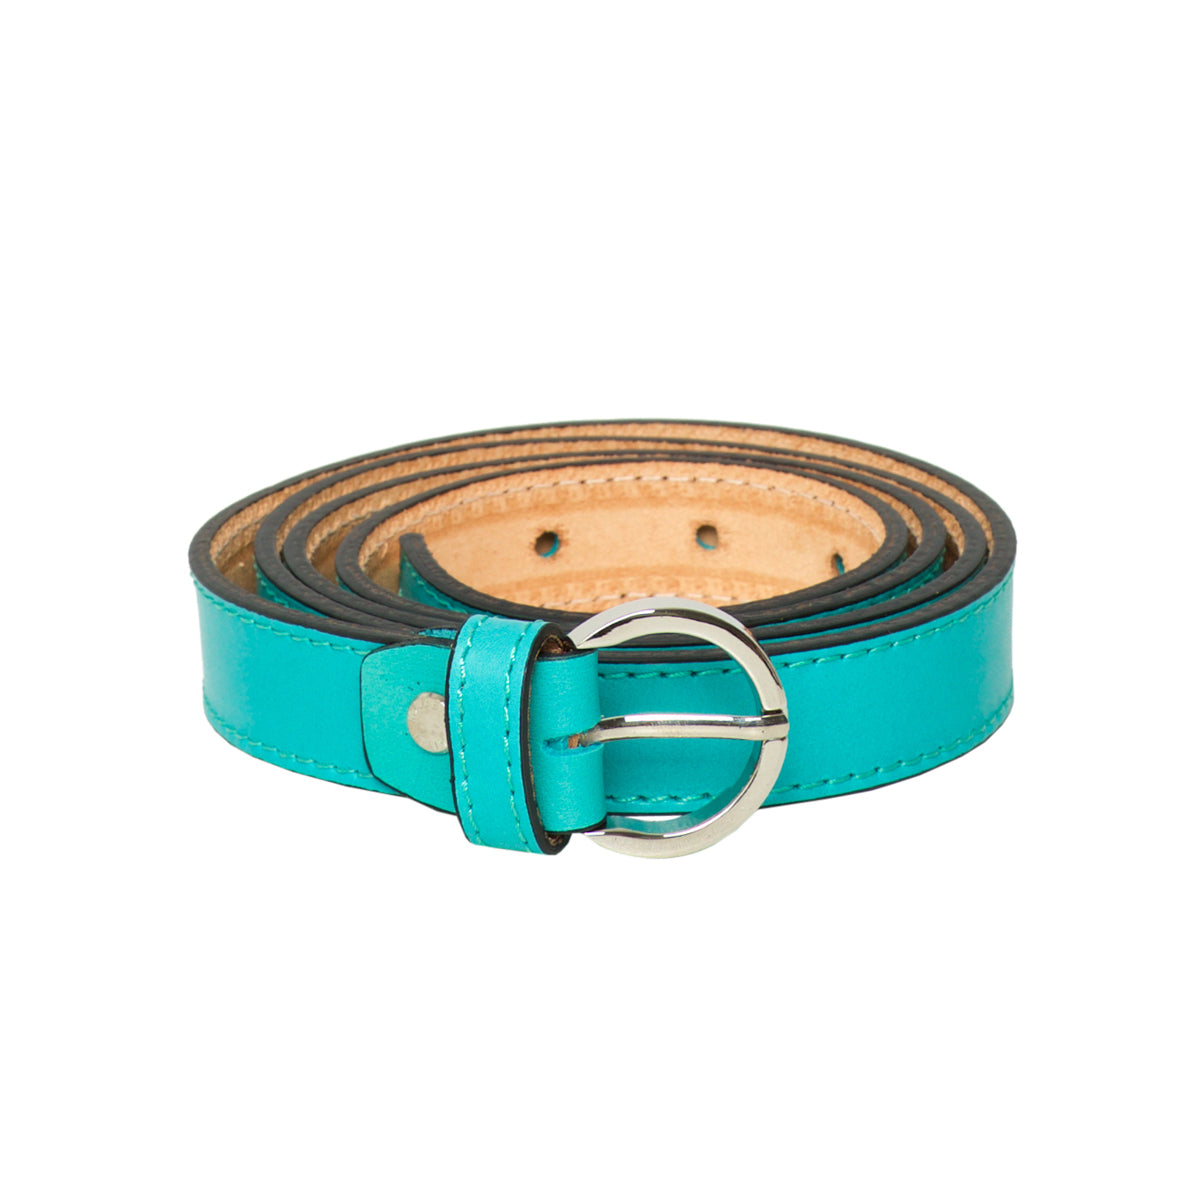 Lucca Aqua - Leather Belt